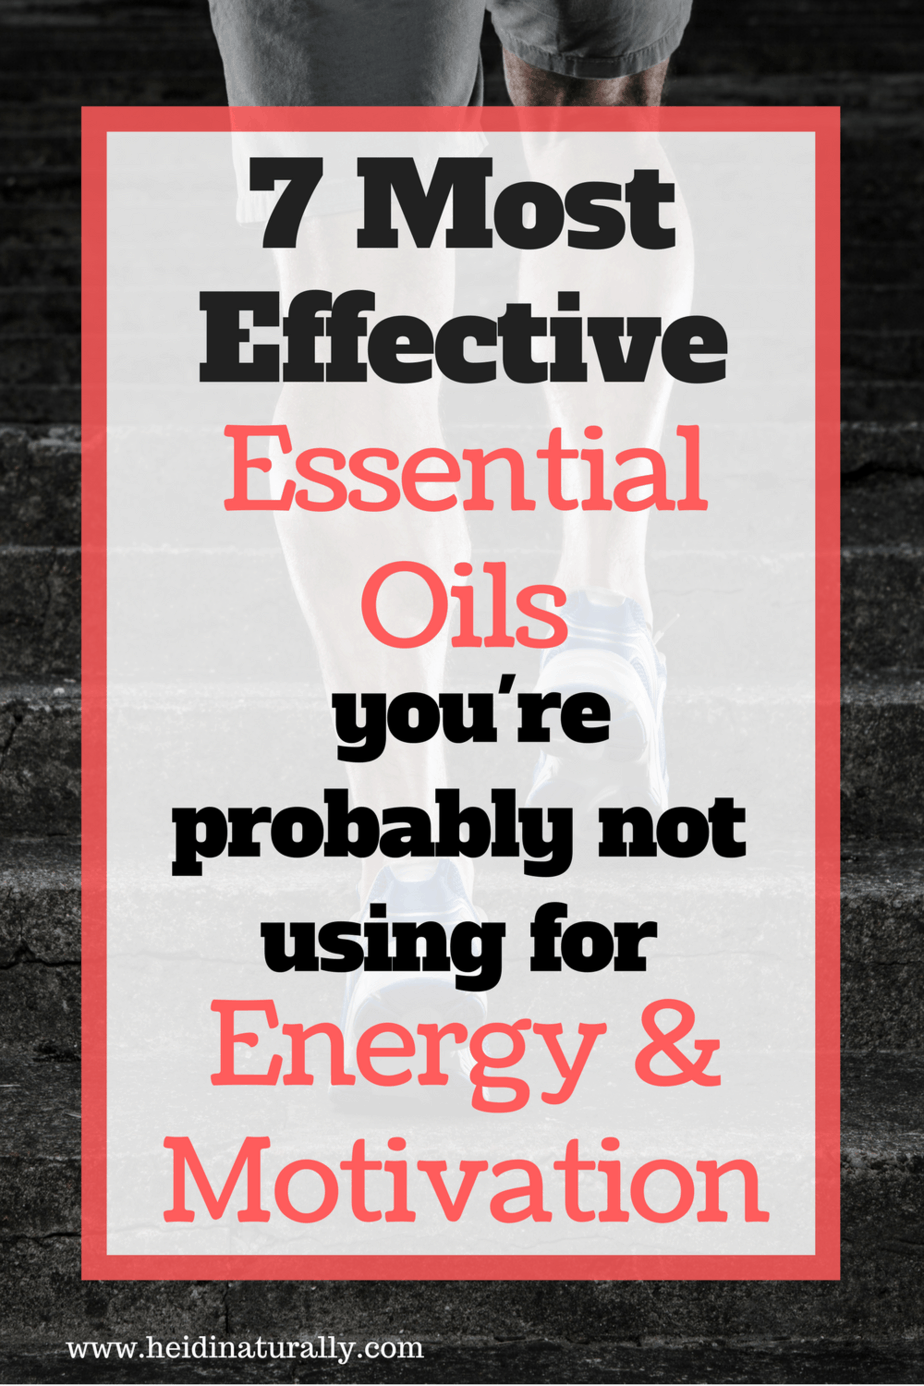 Find out which essential oils and blends to use for energy and motivation. Learn which oils are most powerful & how to use them effectively.